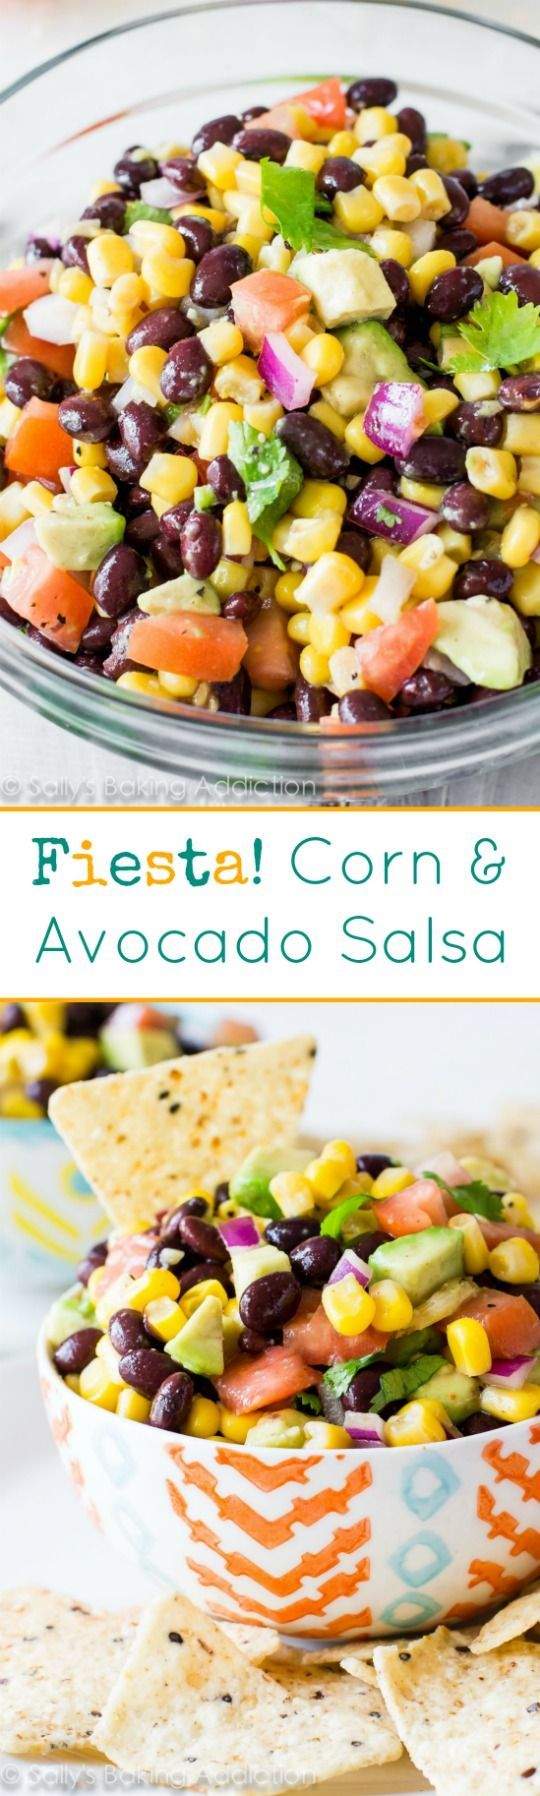 Fiesta Corn & Avocado Salsa: aaddicting corn salsa packed with avocado, black beans, cilantro, and plenty of flavor! A fiesta in a bowl, if you will!